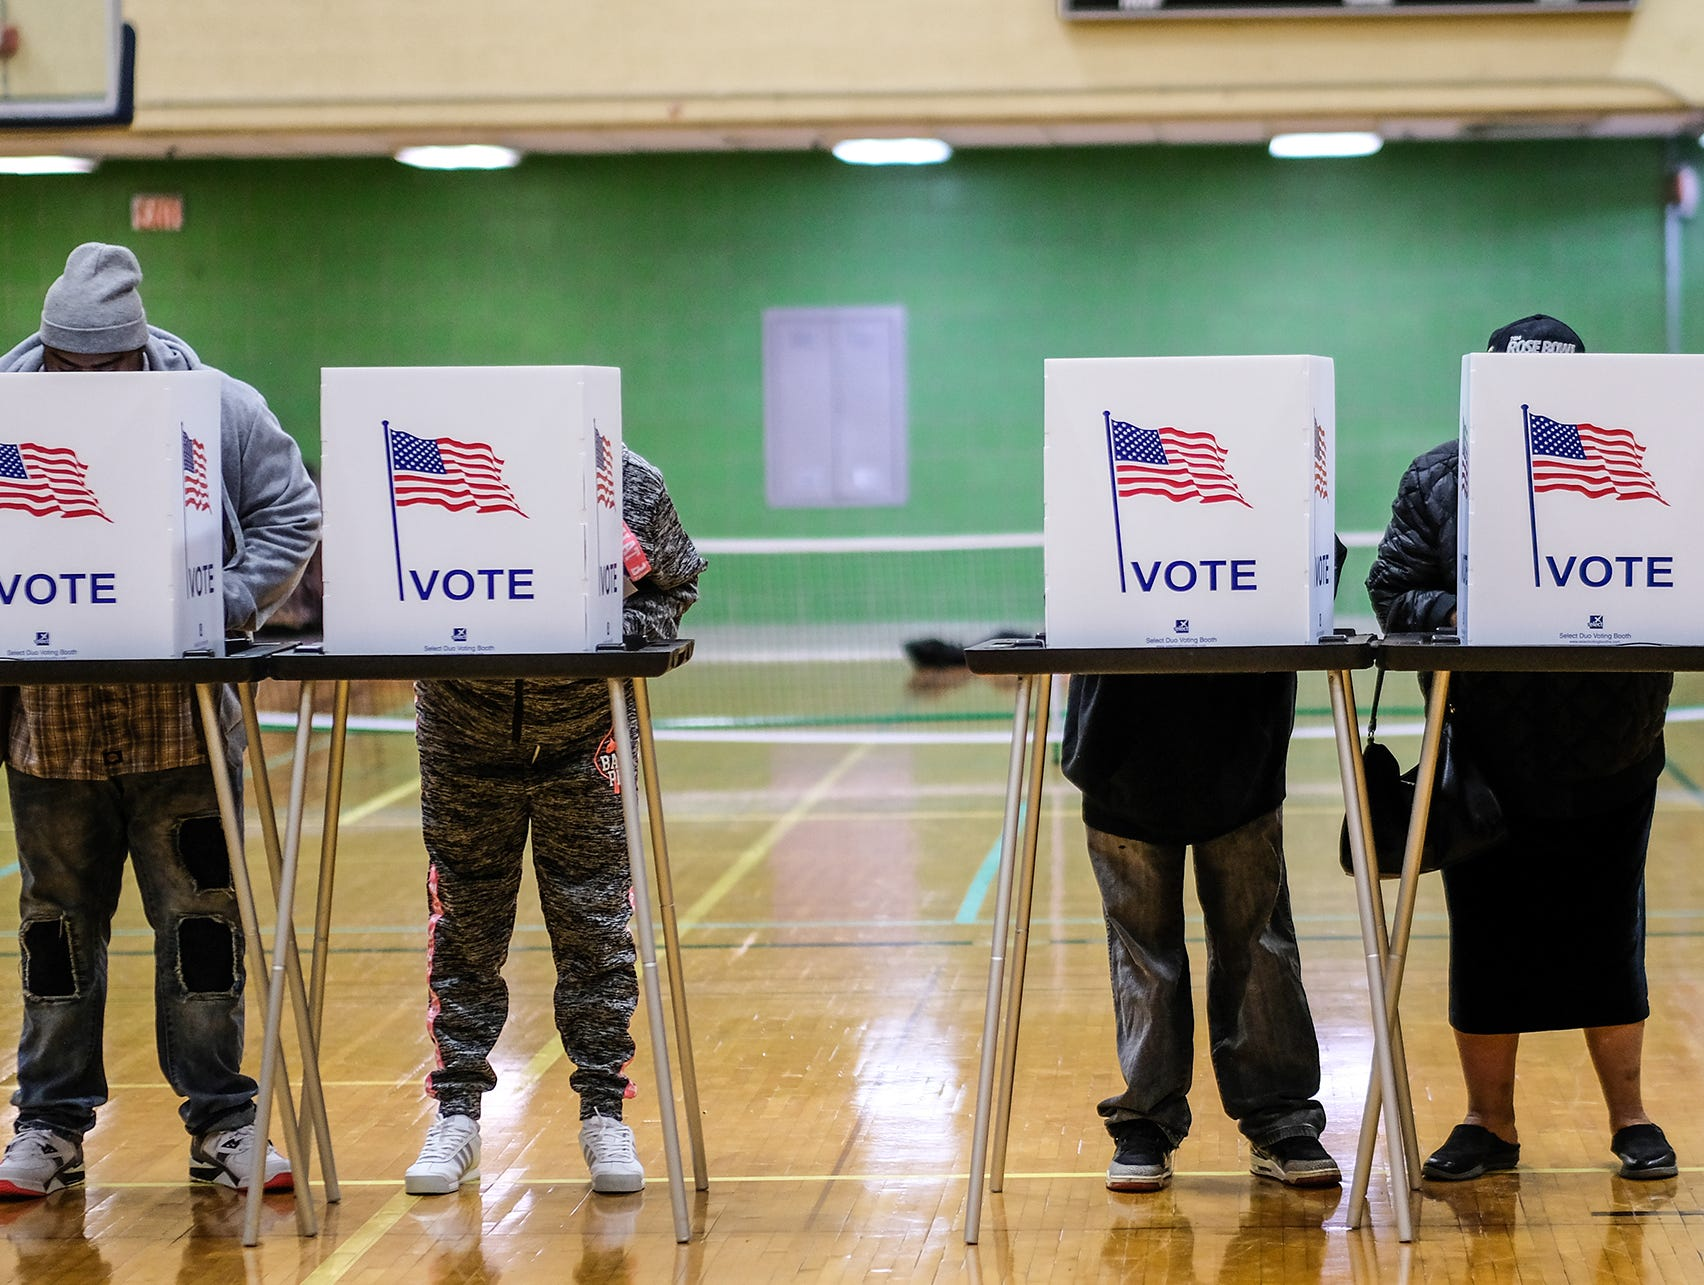 Voters fill the voting booths at Alfreda Schmidt South Side Community Center in Lansing as they cast their votes Tuesday, Nov. 6, 2018.